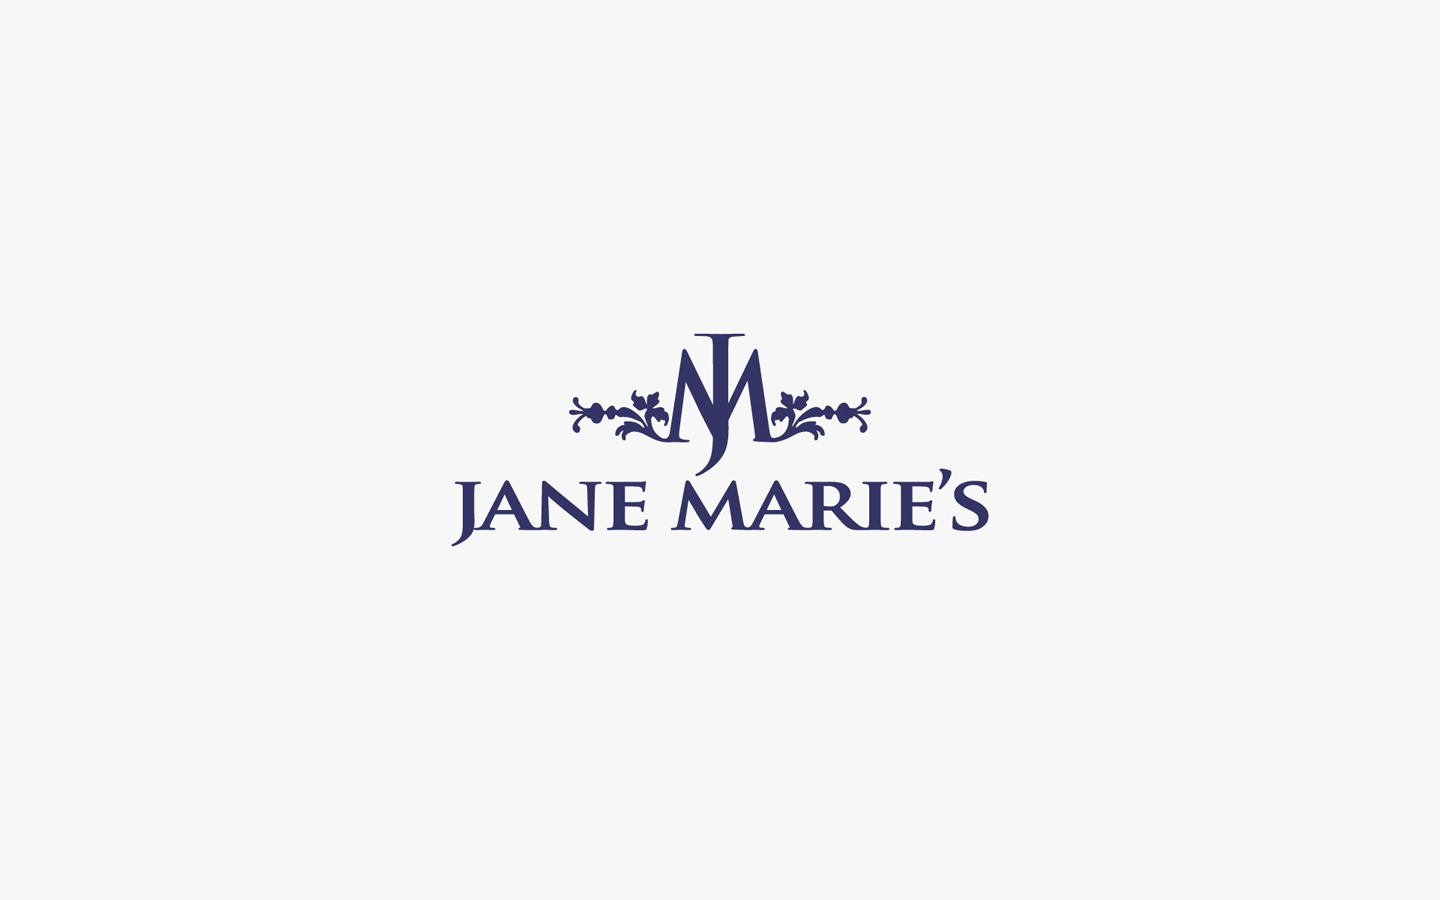 Jane Marie's Logo Design In Brand Colour